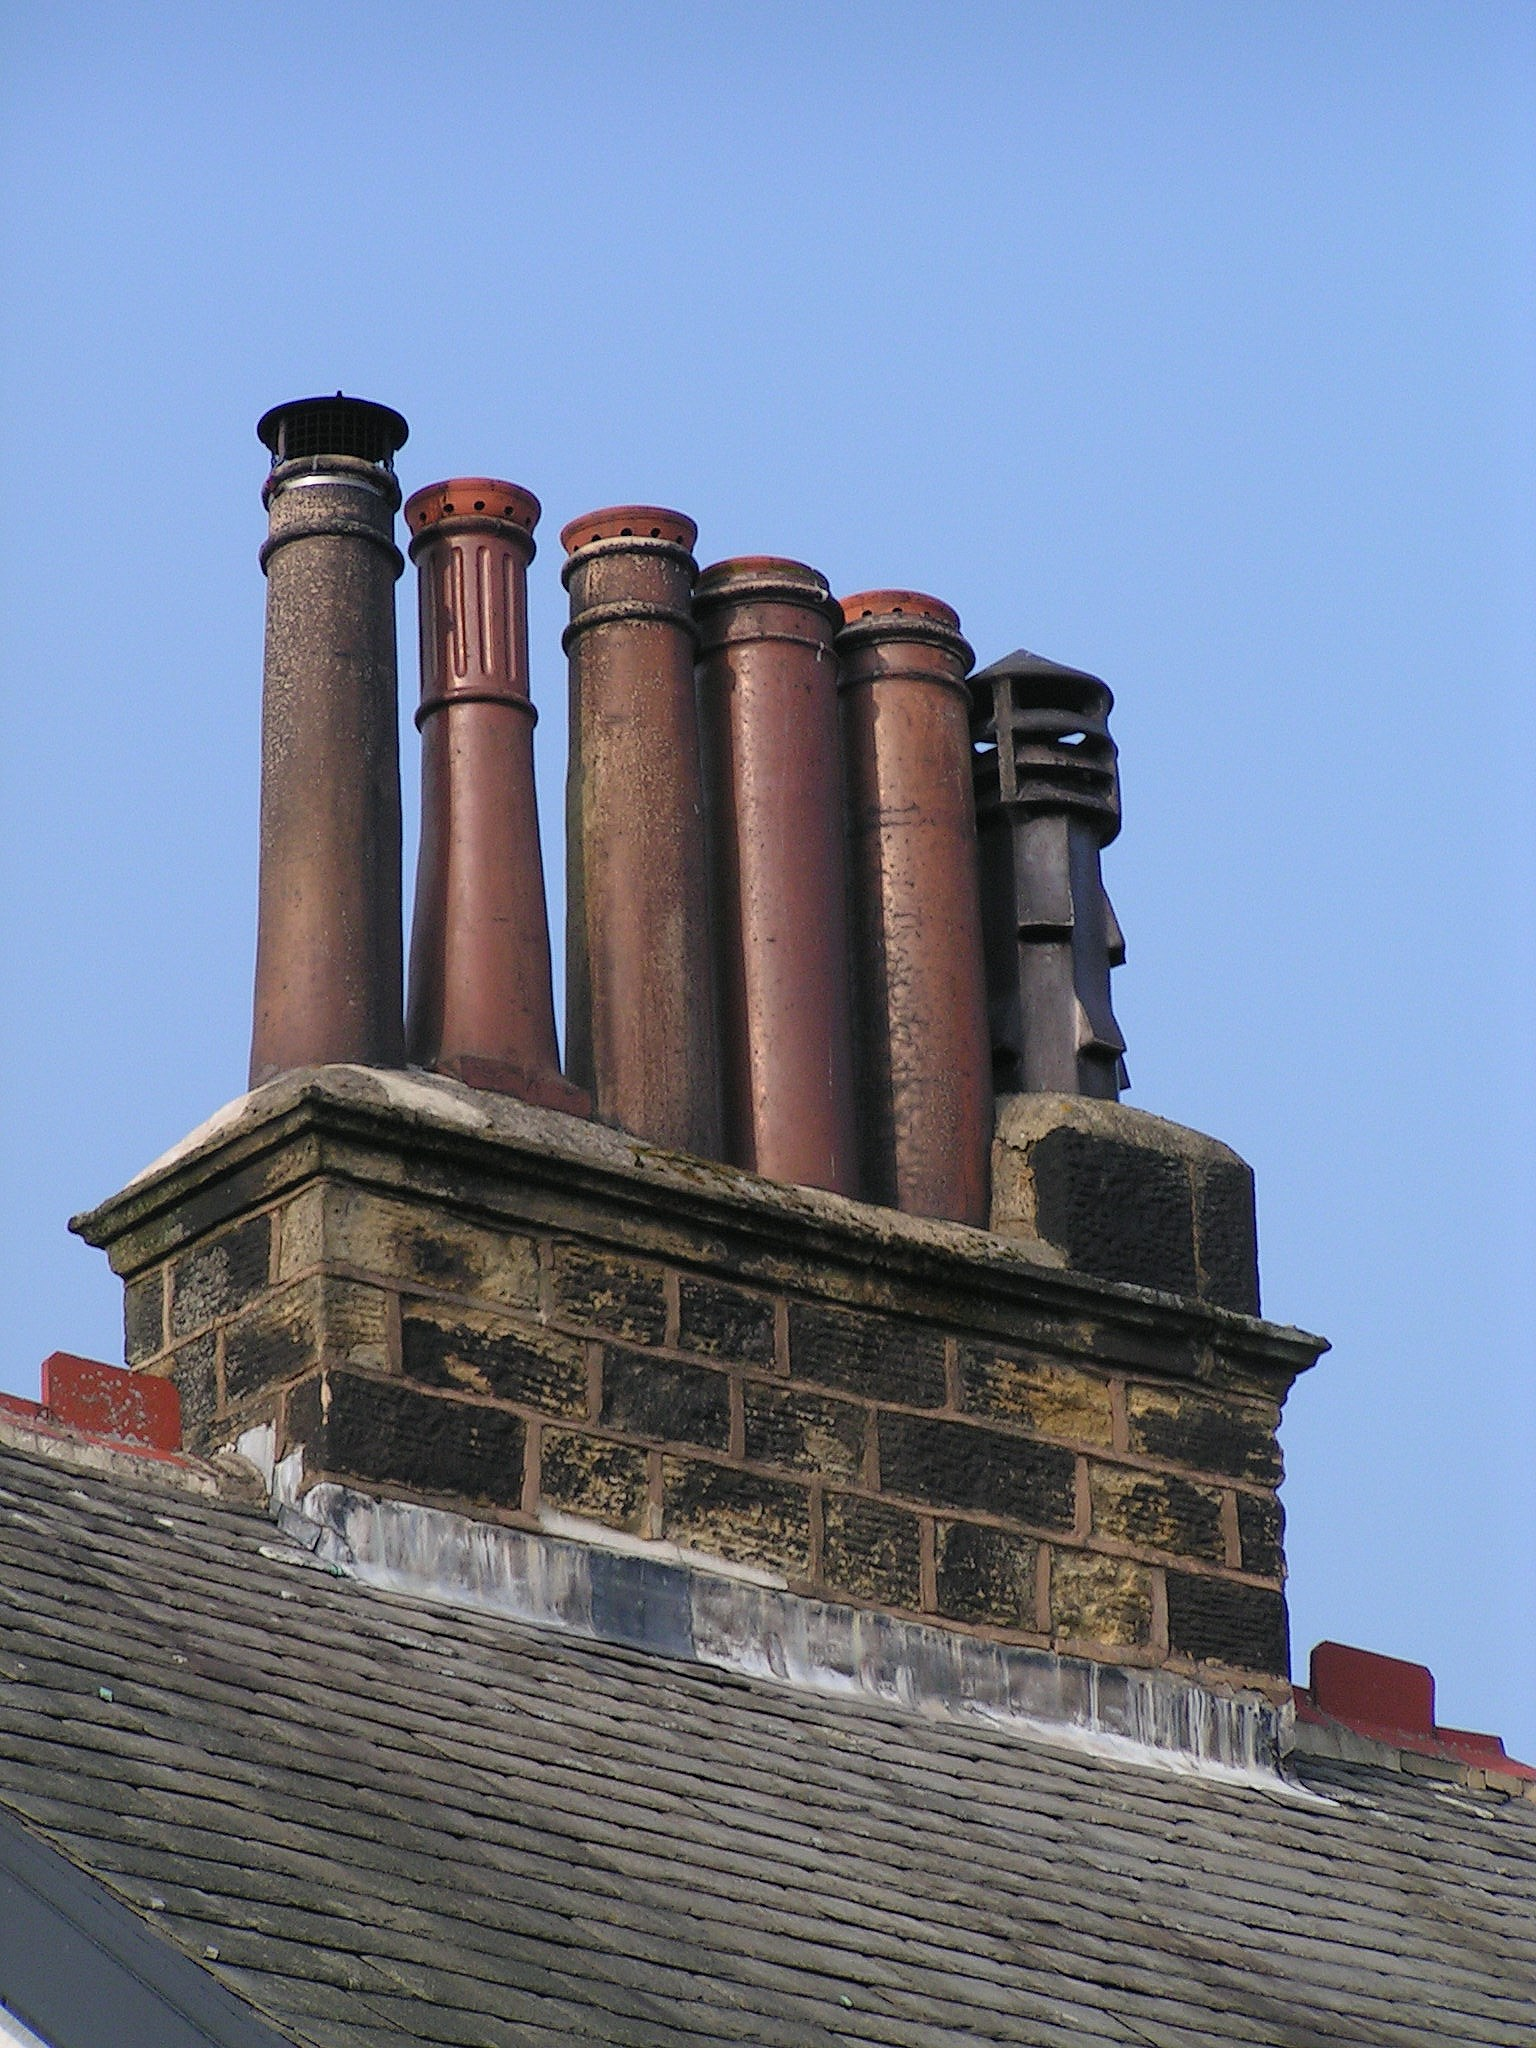 'Long Tom' chimney pots on Victorian house in Ilkley, Yorkshire, c. 1885